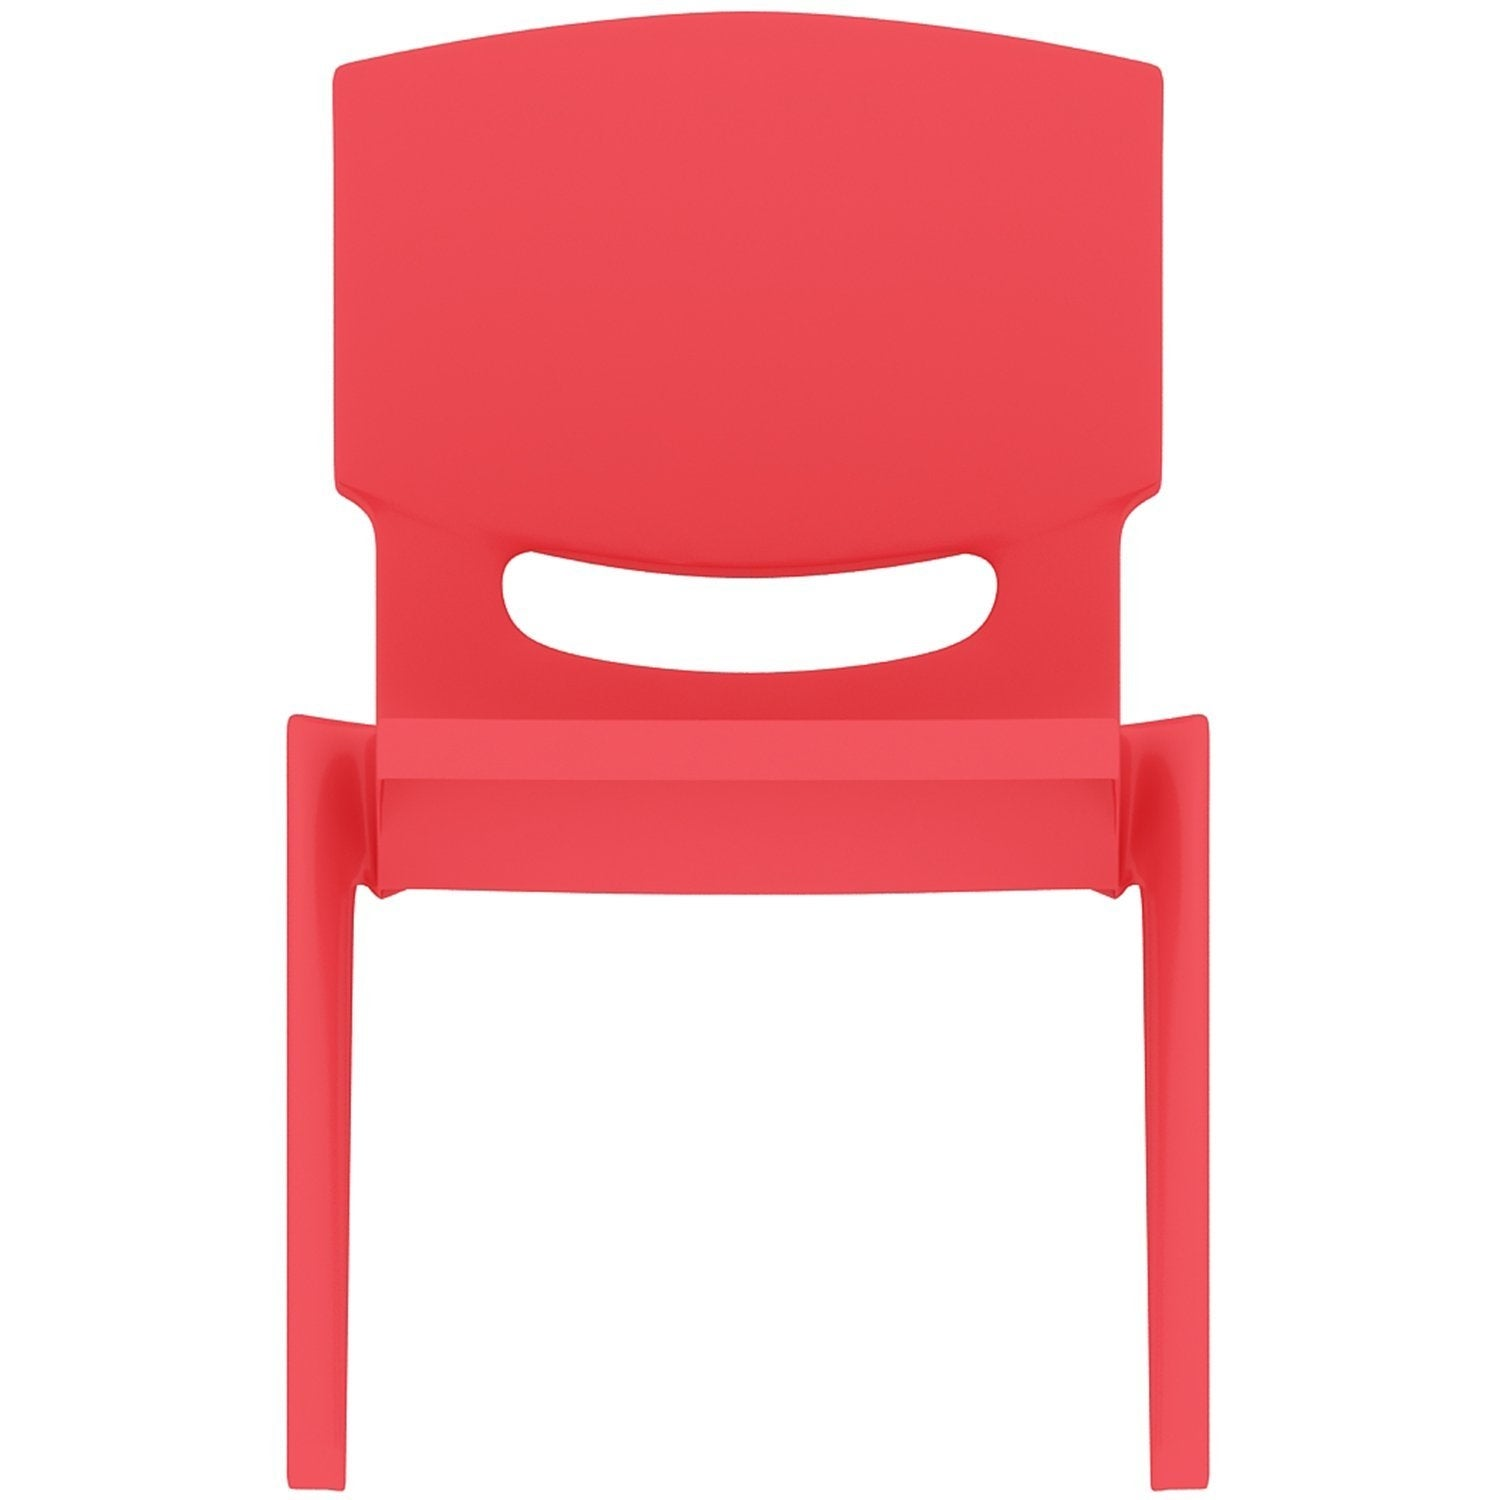 About A Chair 12 Side Chair.Retired 2xhome Blue Kids Size Plastic Side 12 Seat Height Chair